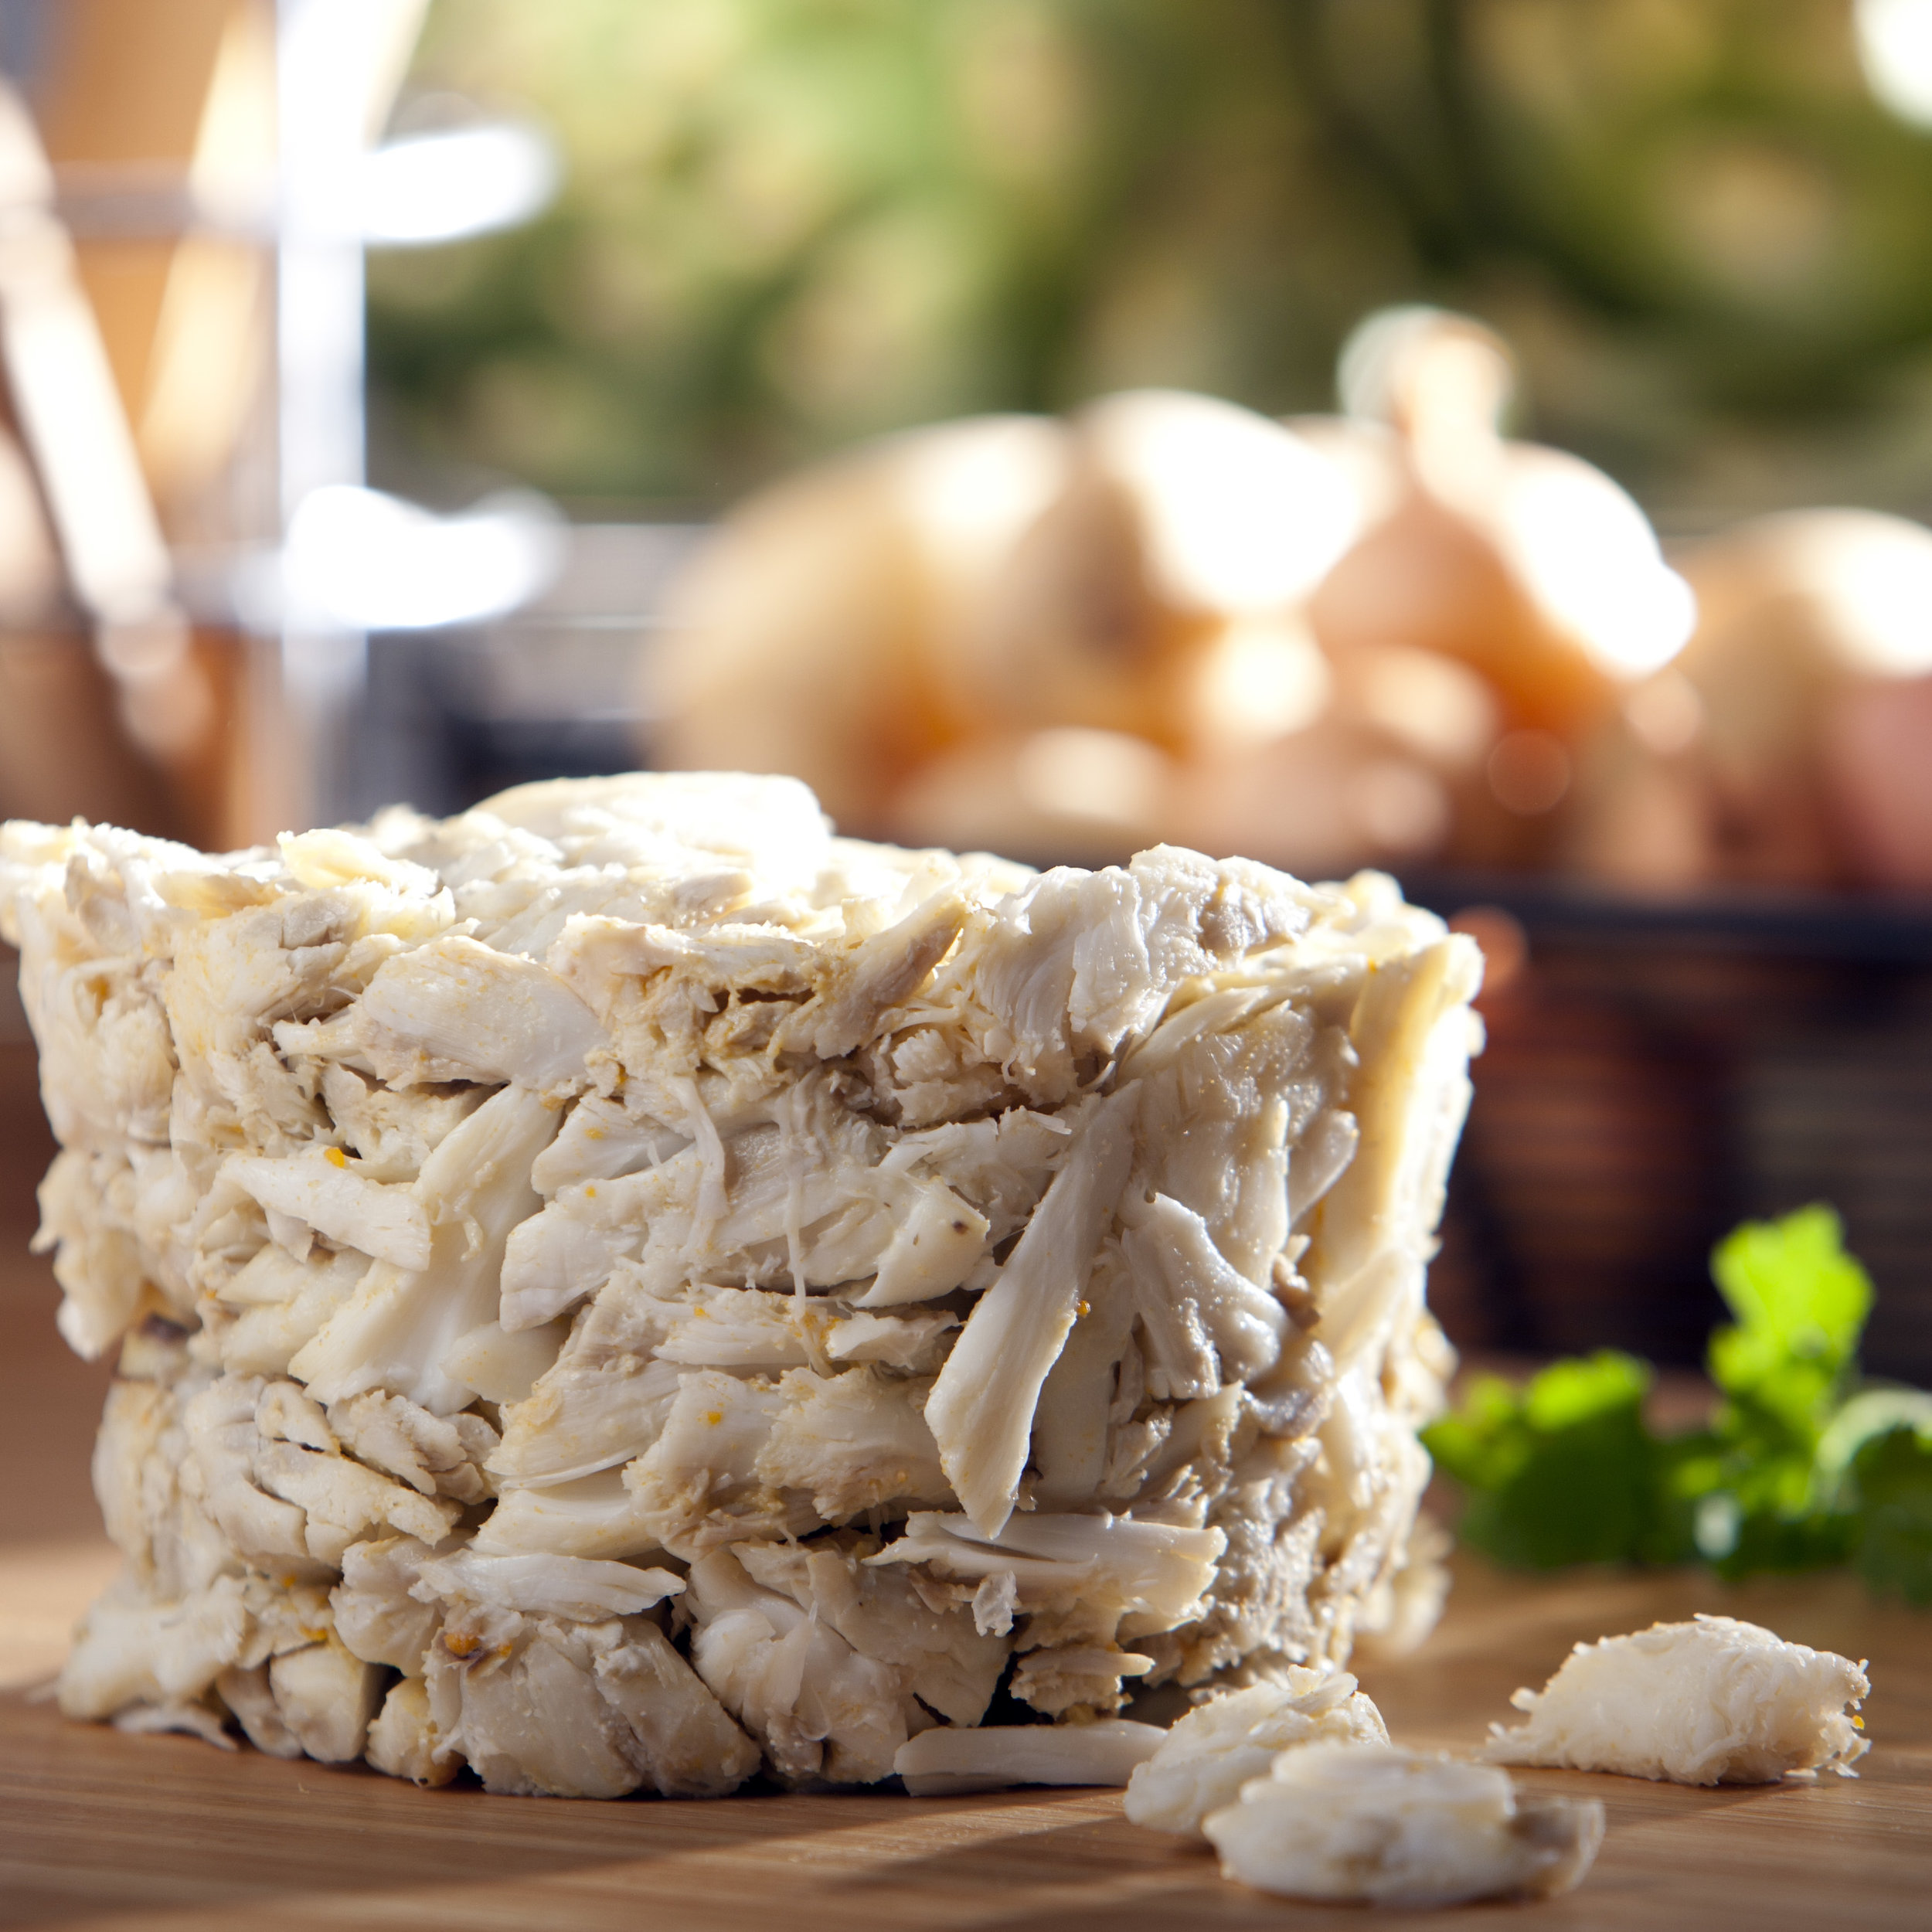 Fresh Jumbo Lump & Backfin Lump Crabmeat.  Available in 16 oz. & 8 oz. offerings.